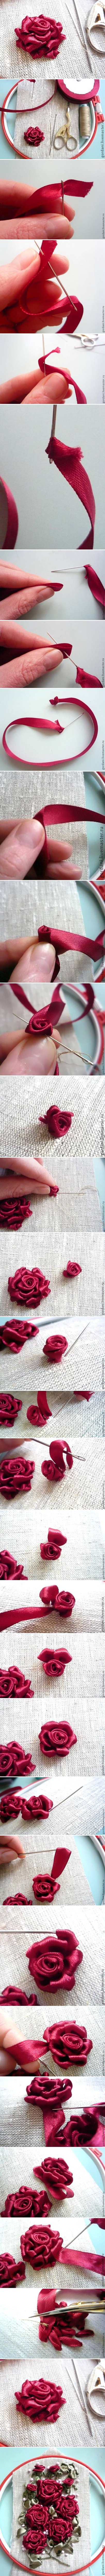 How to make Nice Beautiful Ribbon Rose step by step DIY tutorial instructions